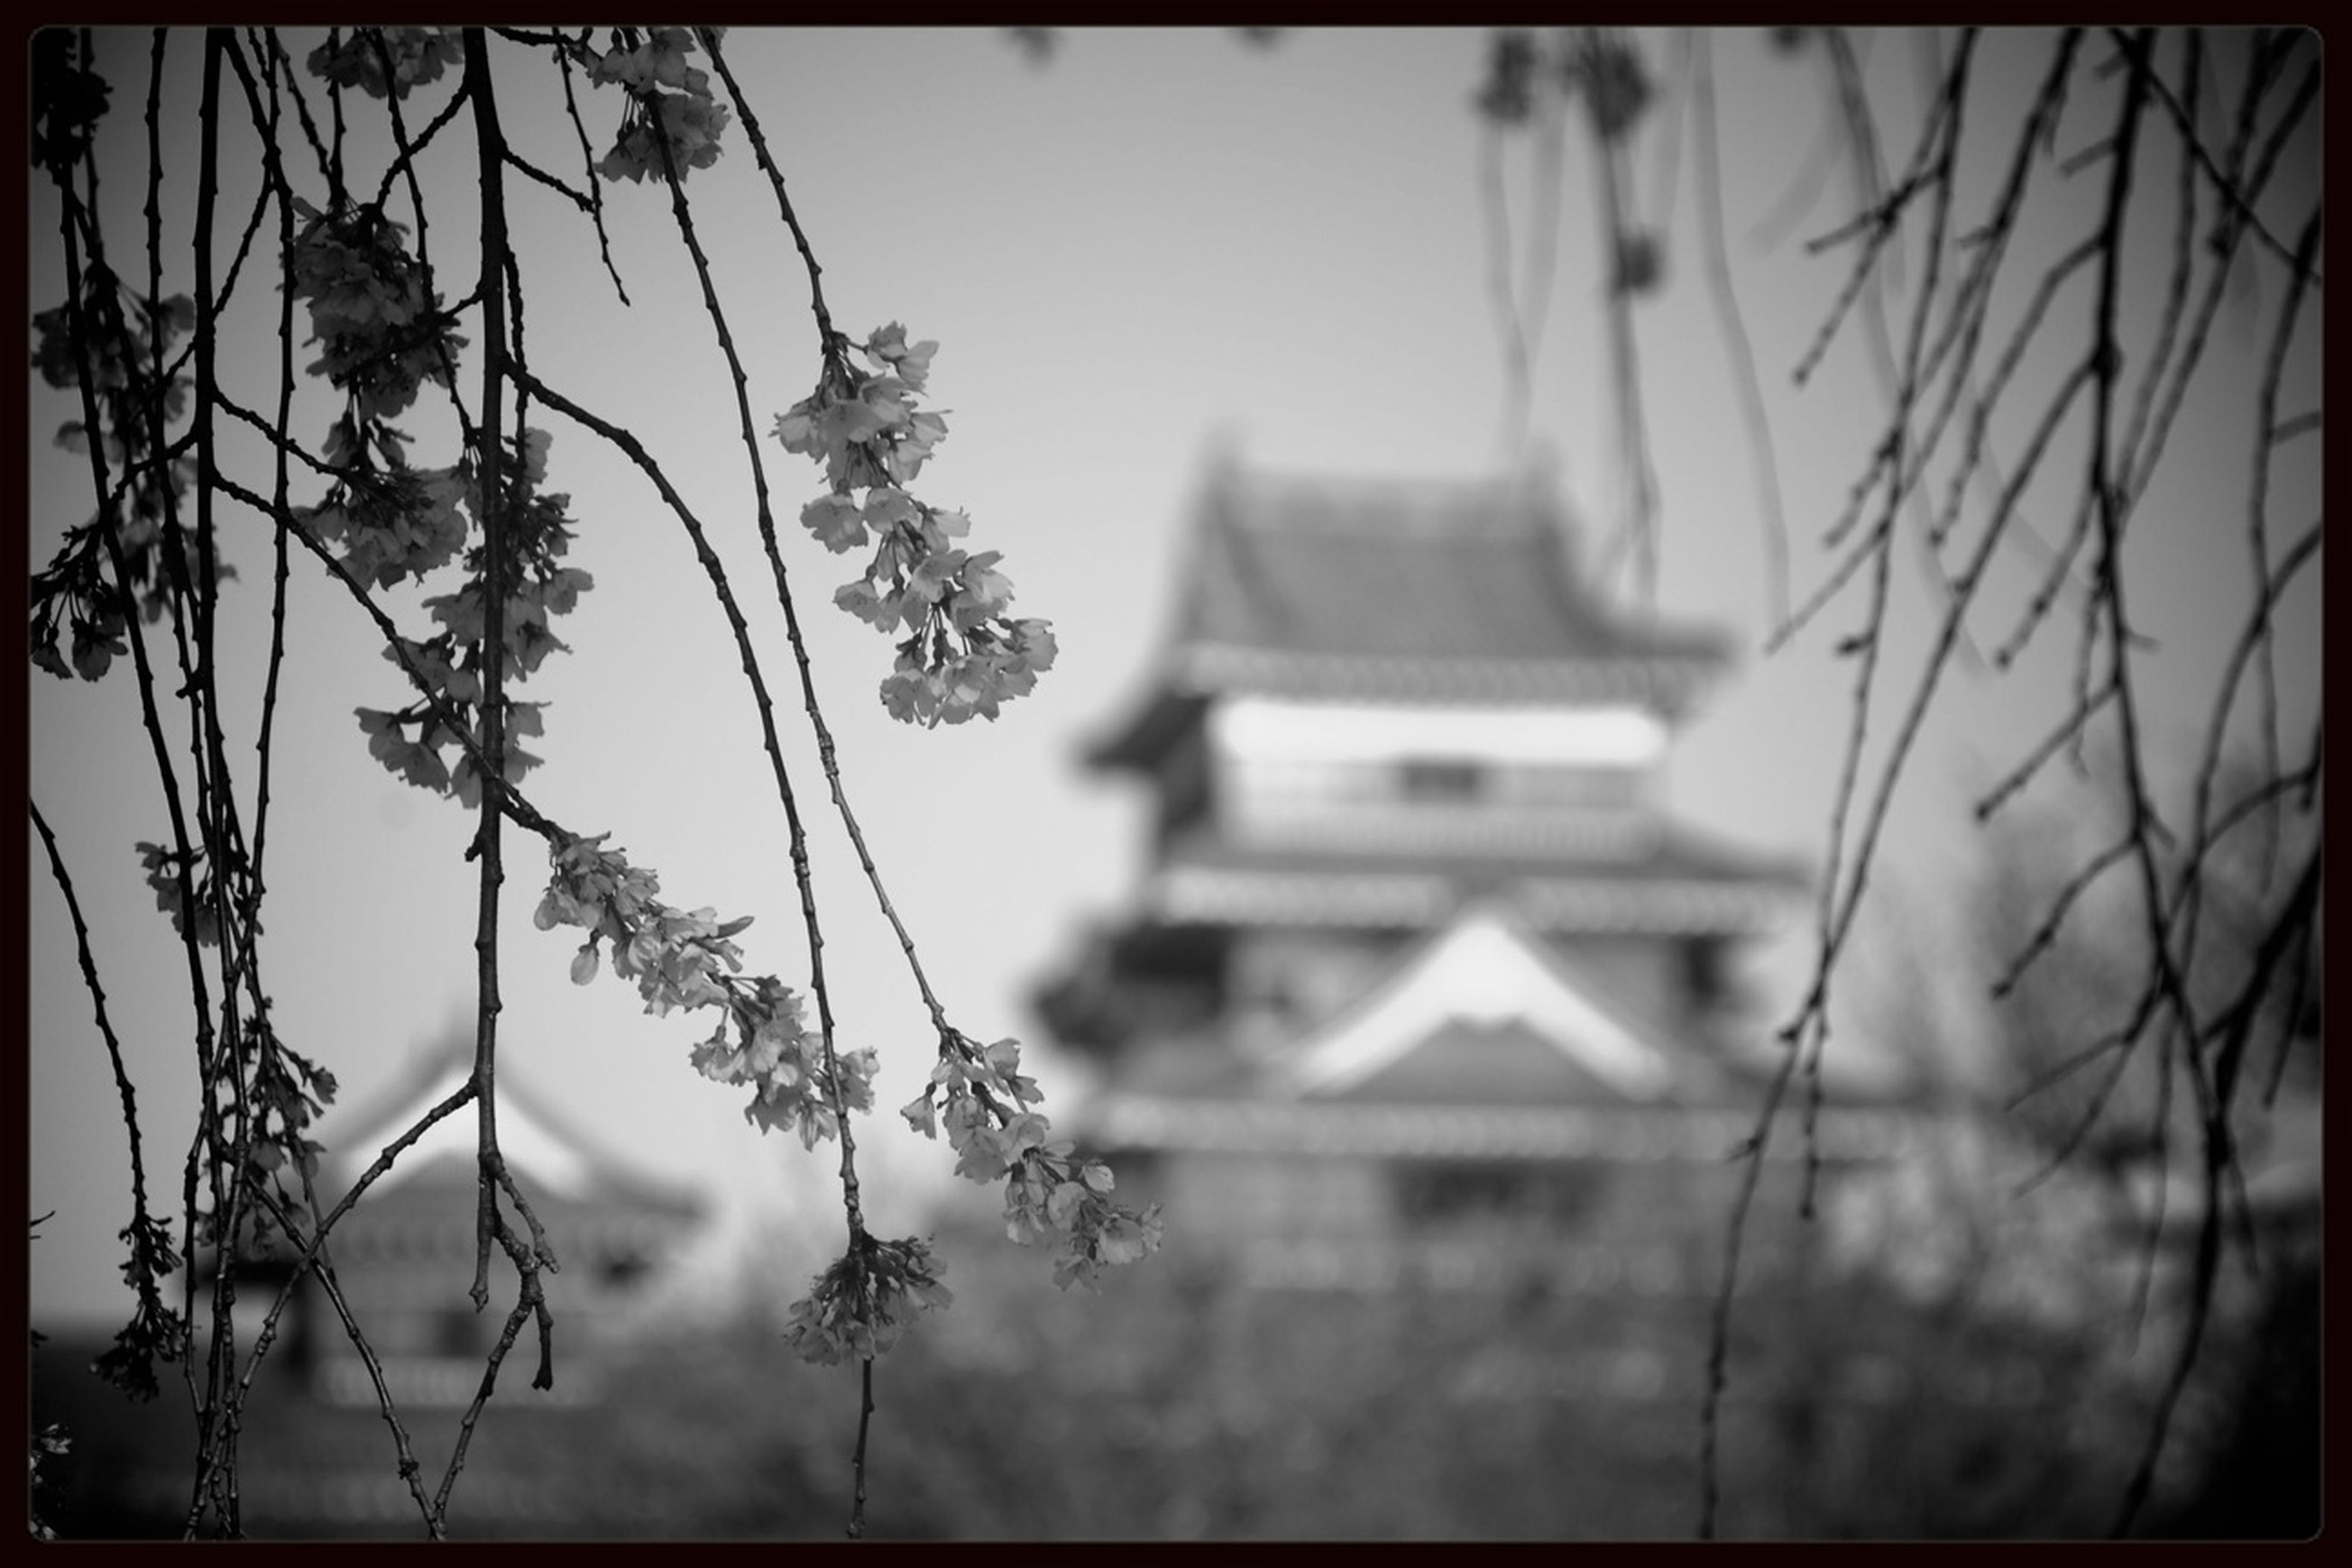 growth, flower, plant, building exterior, built structure, architecture, focus on foreground, stem, auto post production filter, house, selective focus, close-up, transfer print, nature, freshness, fragility, low angle view, sky, day, no people